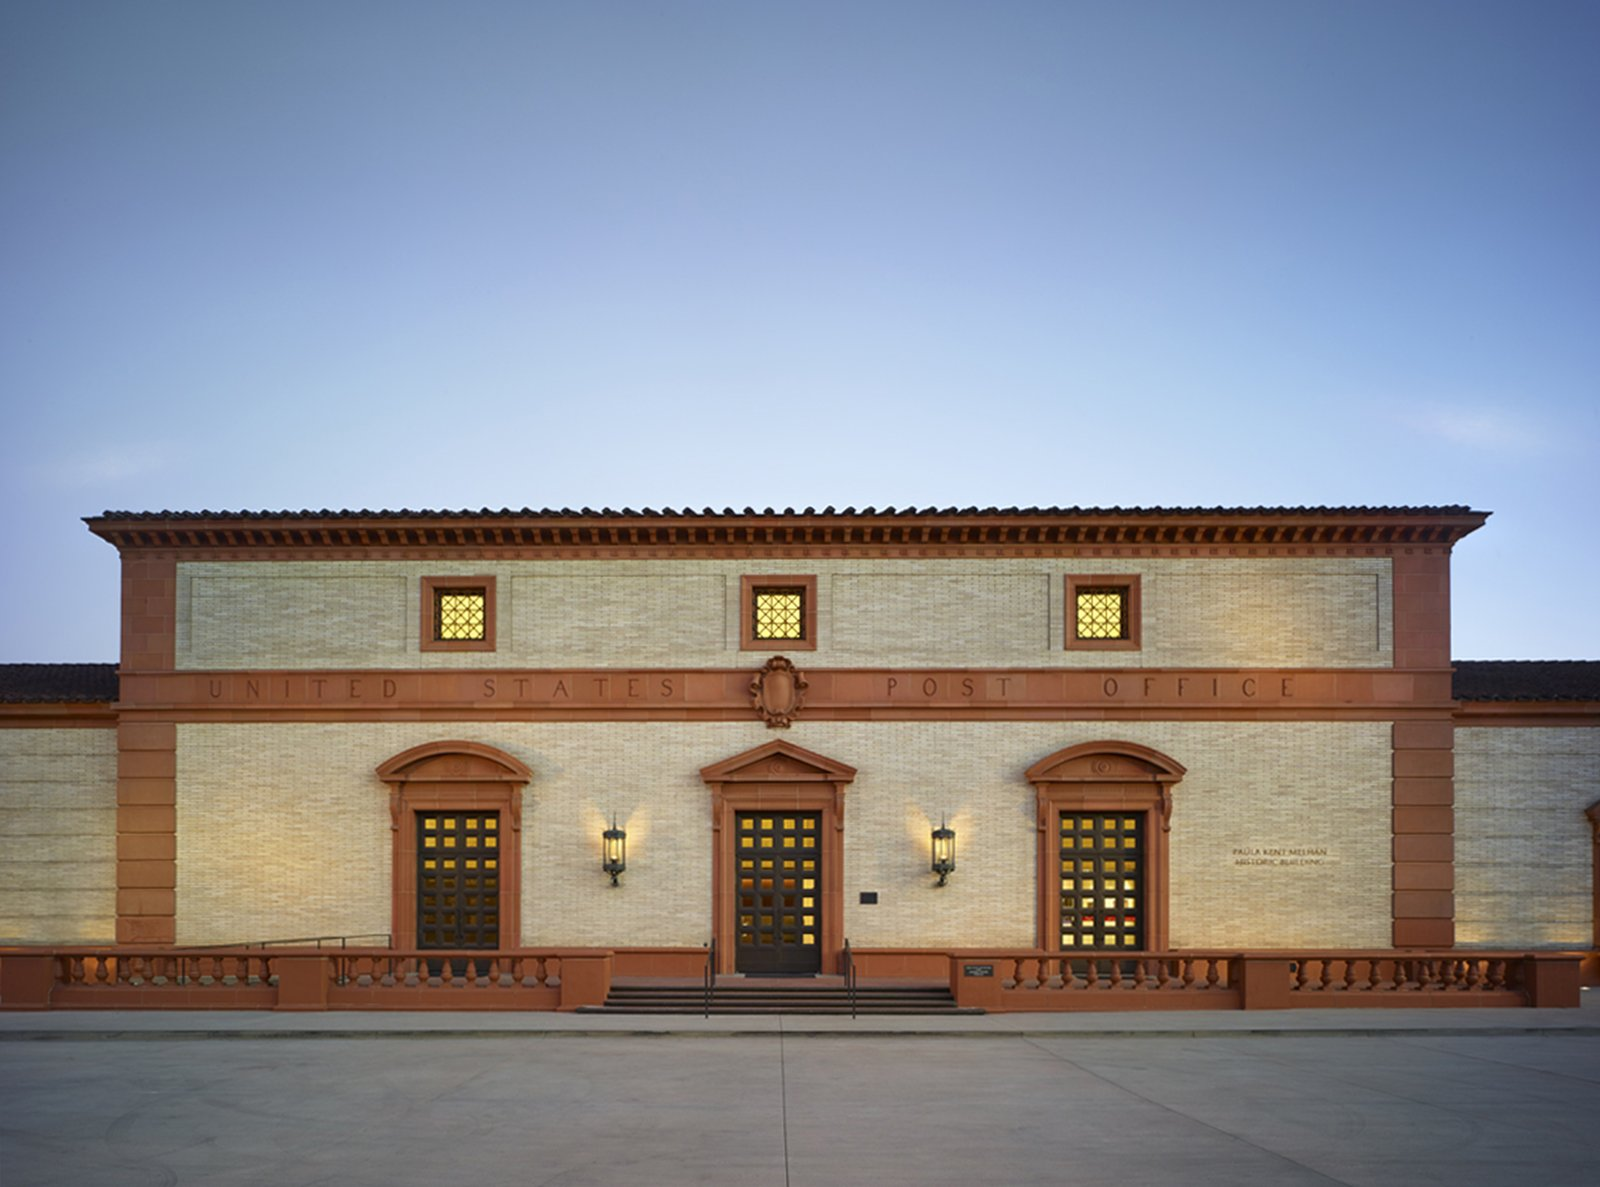 The former post office in Beverly Hills gained new life as the centerpiece of a performing arts complex, the Wallis Annenberg Center for the Performing Arts.  Photo 7 of 7 in 7 Preserved Modern Architecture Icons in Los Angeles